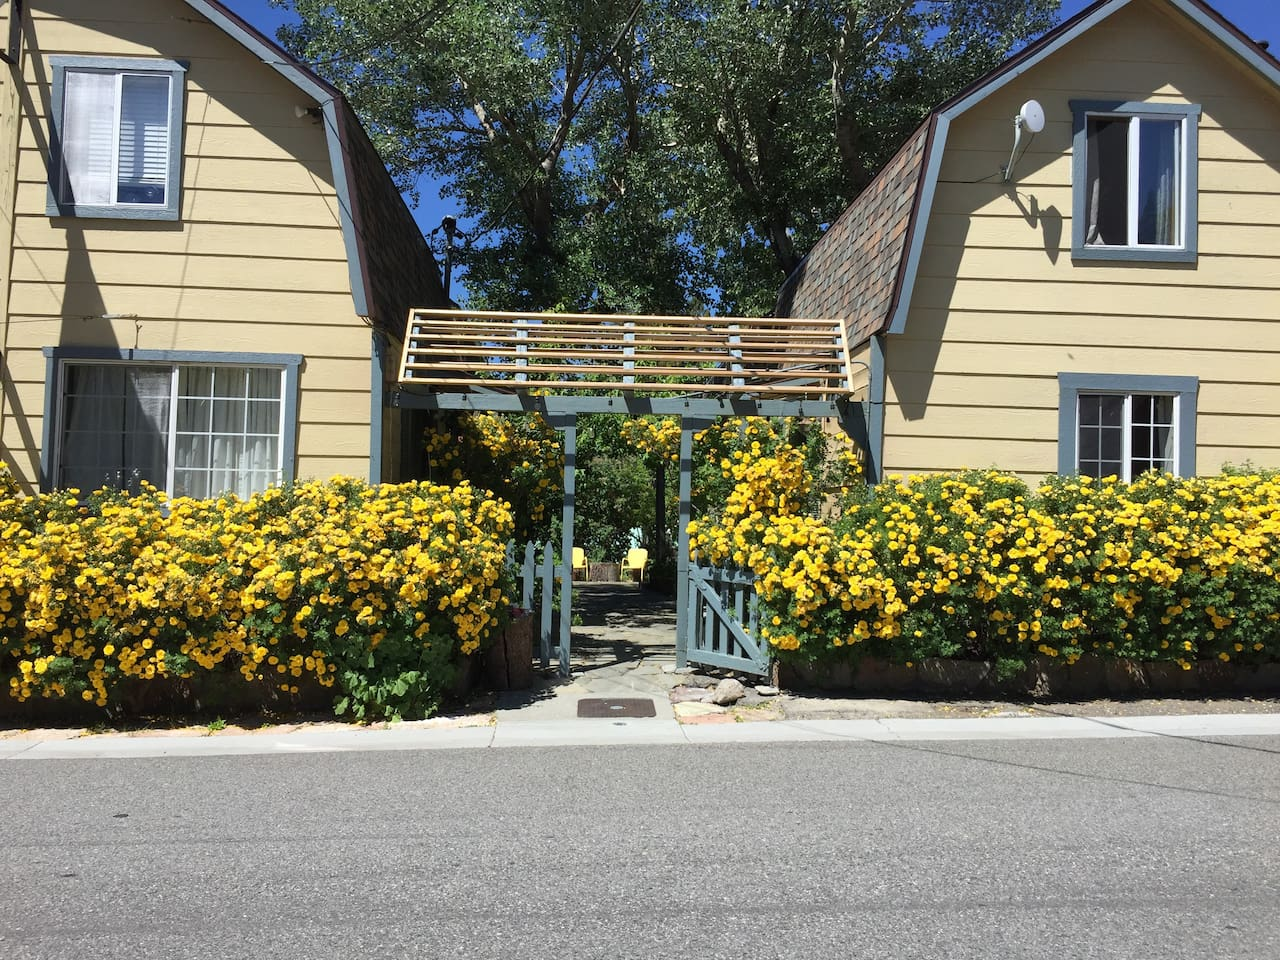 Welcome to The Haven in beautiful June Lake, CA! This is Cabin #4, a sweet studio with separate kitchen and bathroom located off the bedroom.  Step out onto the beautiful deck to enjoy the June Lake view.